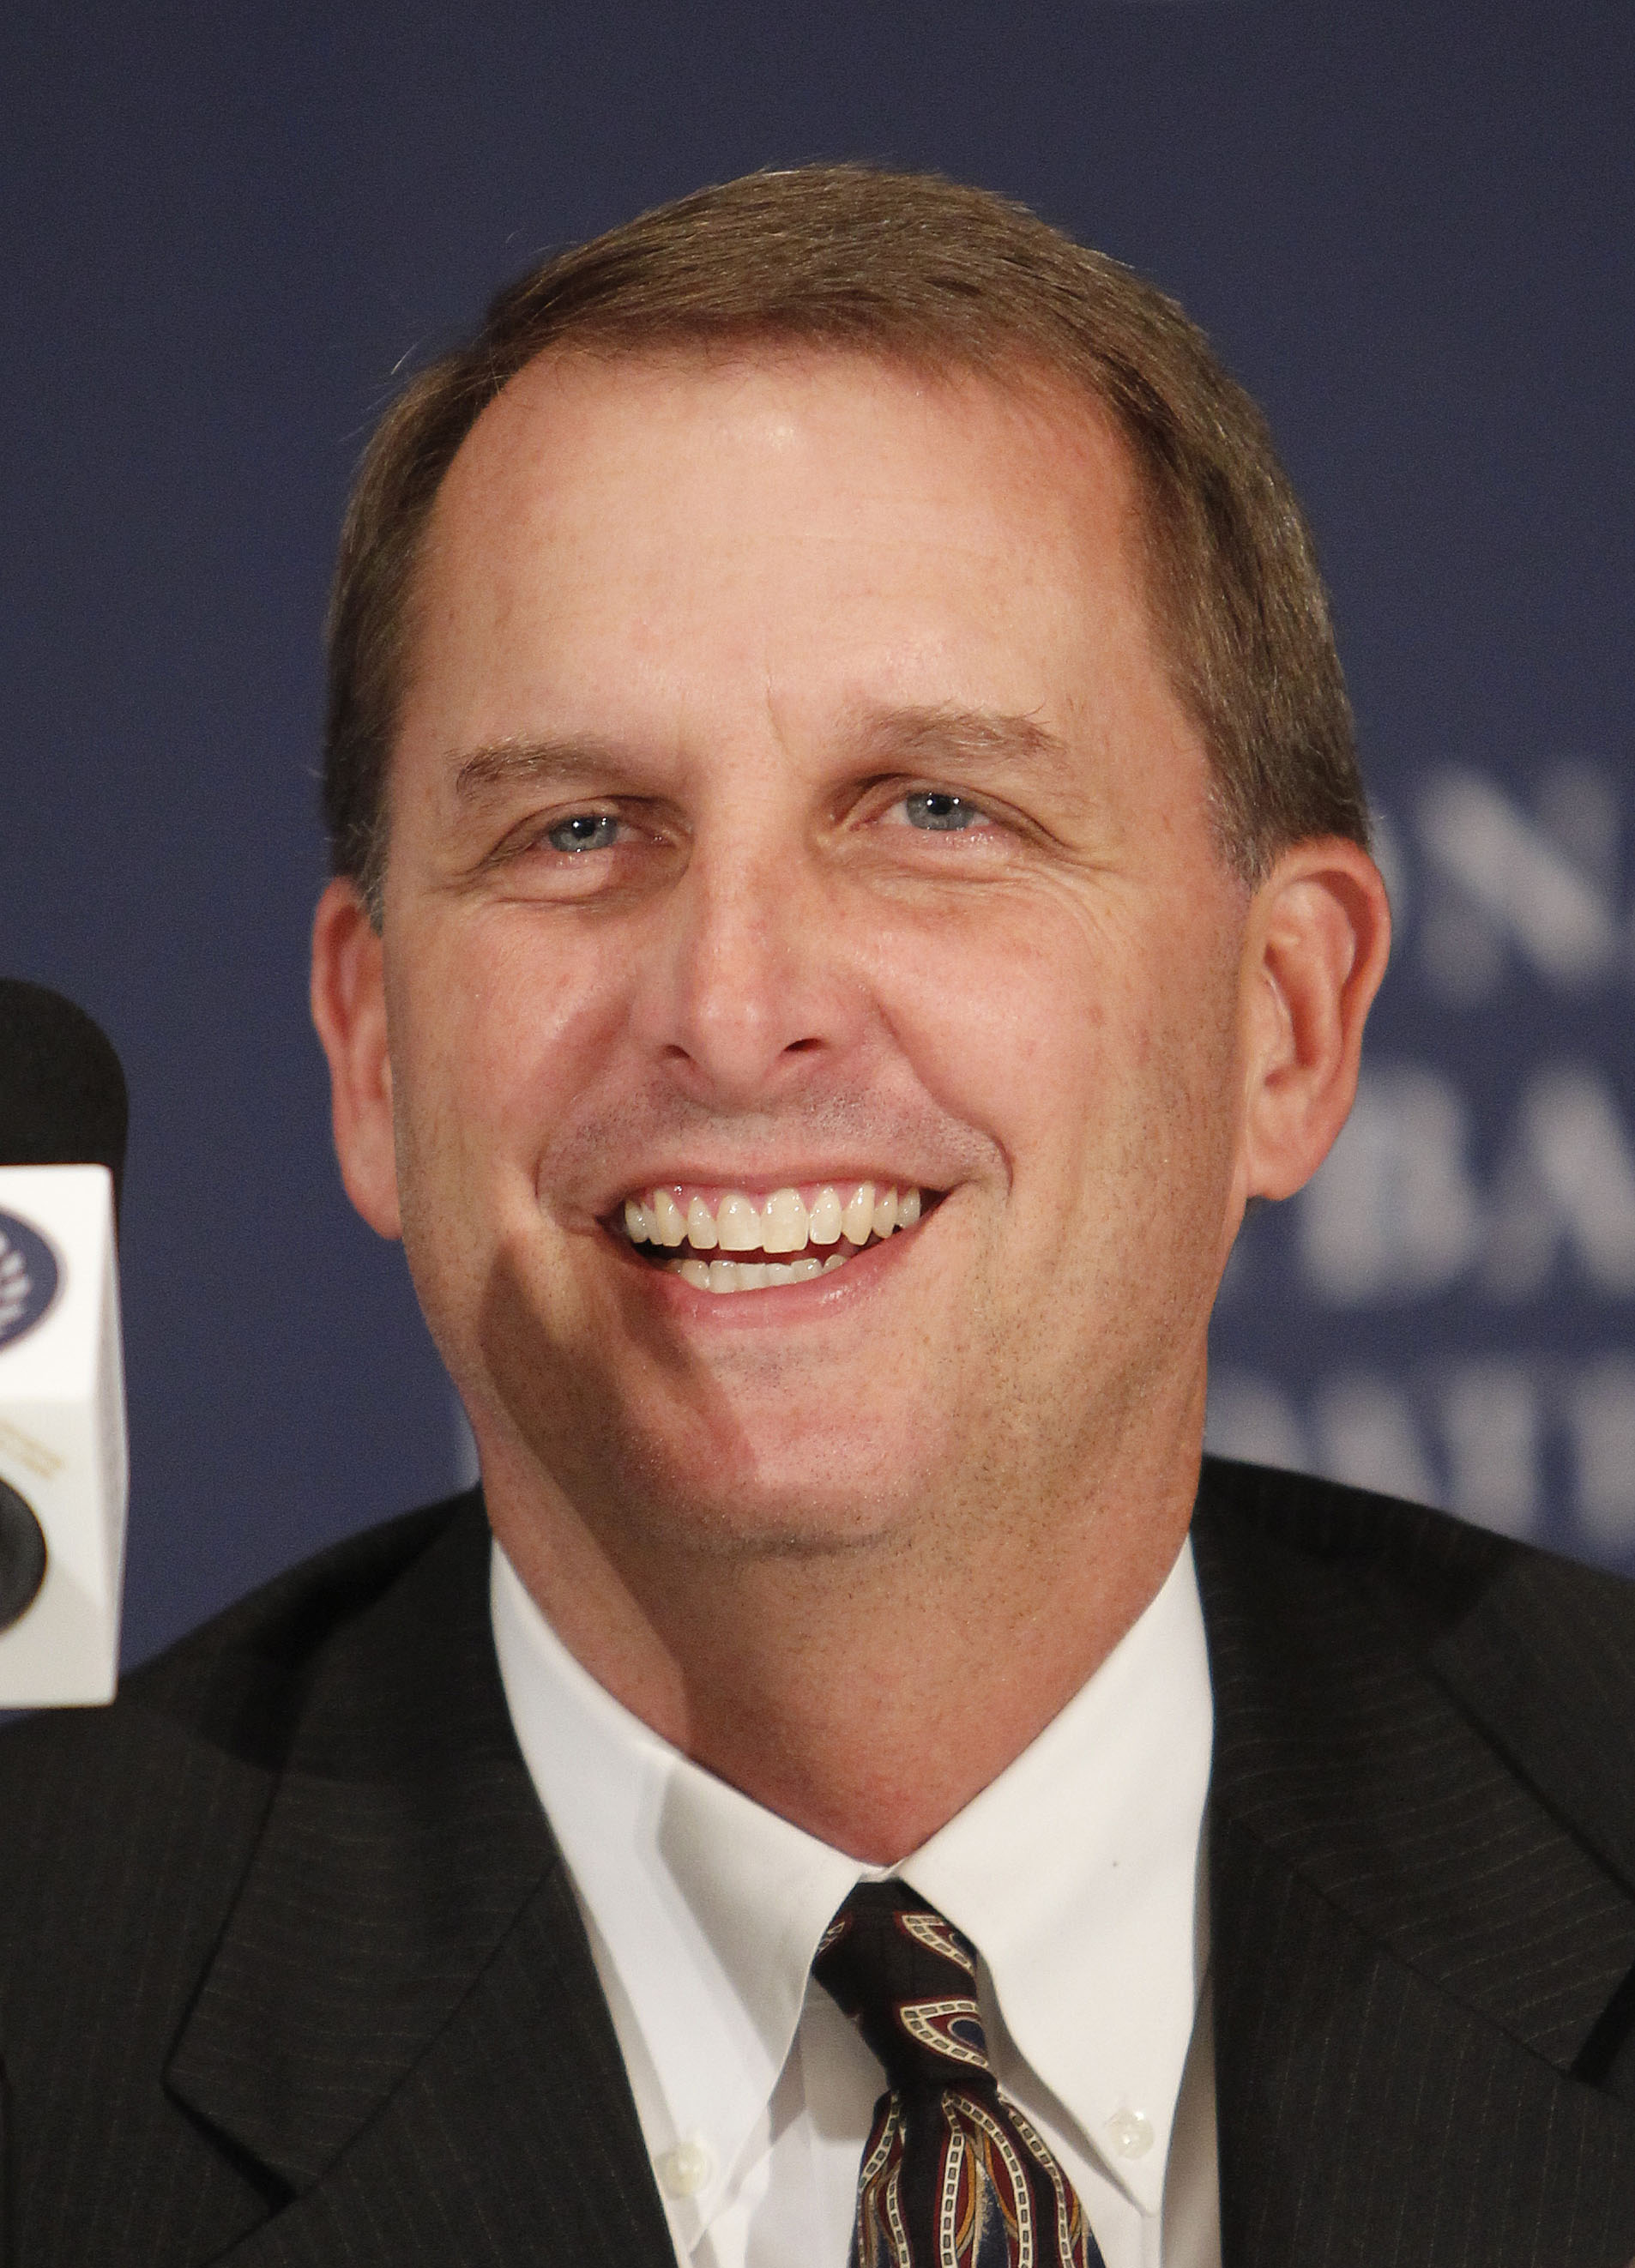 Inductee Ty Detmer, a former quarterback for BYU, speaks during the announcement of the 2012 College Football Hall of Fame class, Tuesday, Dec. 4, 2012, in New York. (AP Photo/Jason DeCrow)